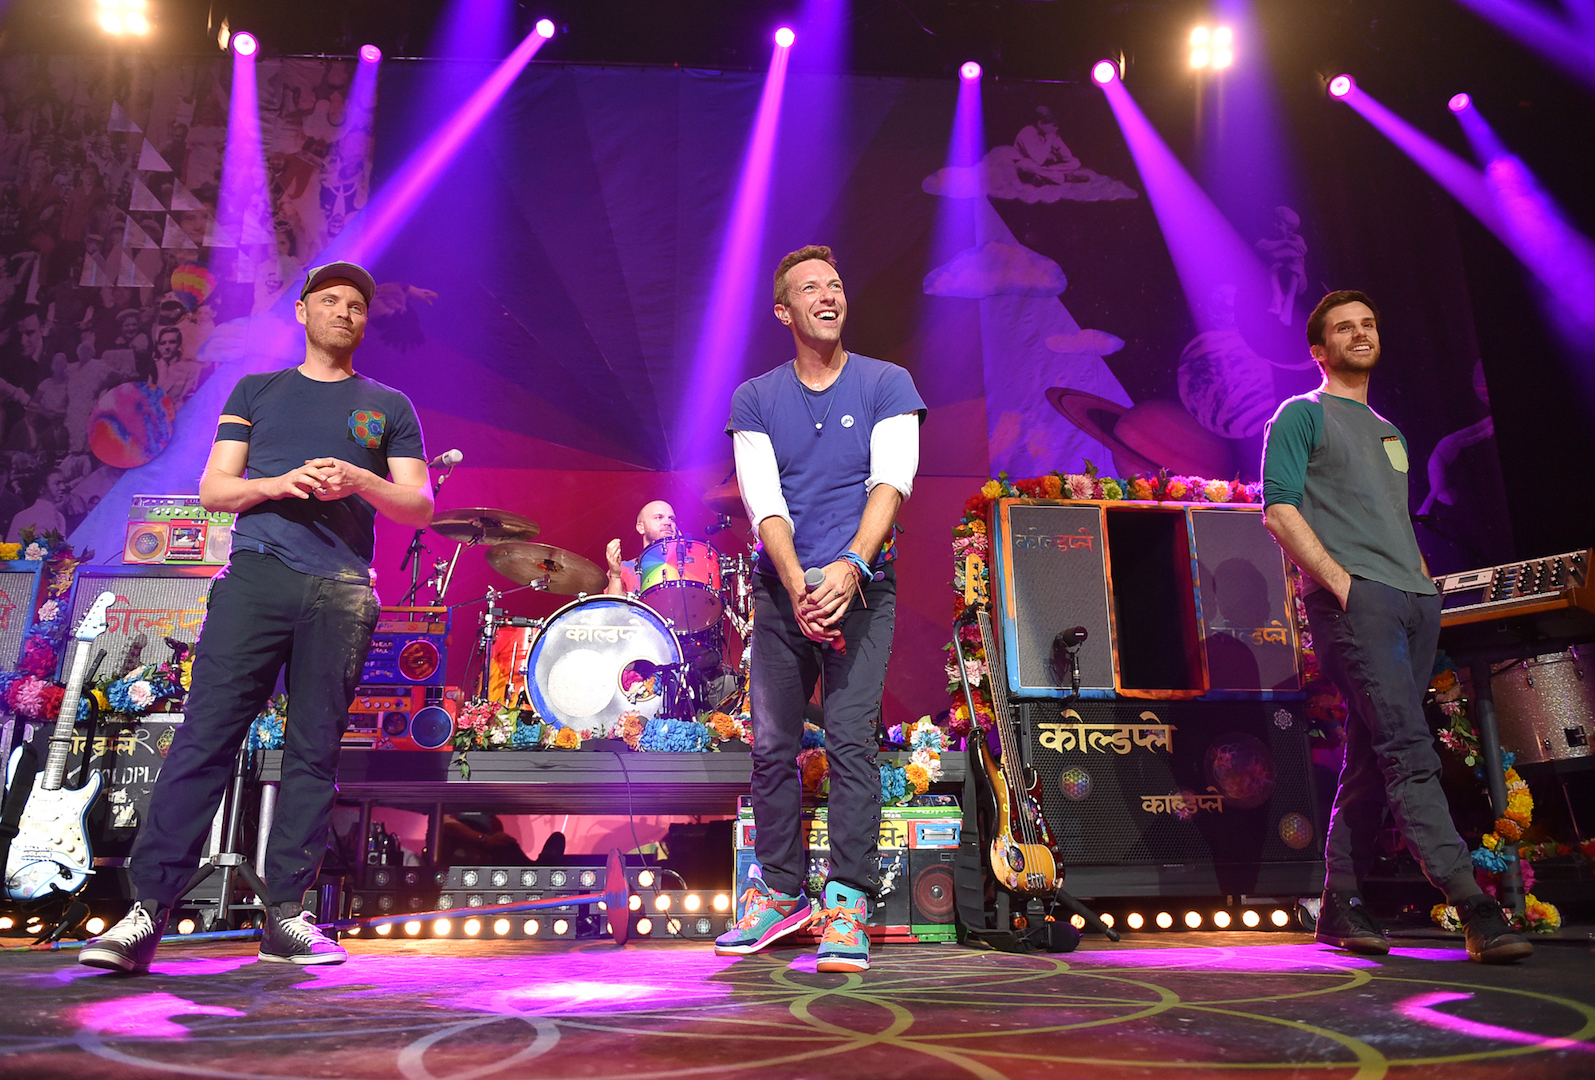 BURBANK, CA - NOVEMBER 19:  Singer Chris Martin, guitarist Jonny Buckland, bass player Guy Berryman and drummer Will Champion of Coldplay perform on stage at iHeartMedia Presents The iHeartRadio Album Release Party at iHeartRadio Theater on November 19, 2015 in Burbank, California.  (Photo by Mike Windle/Getty Images for iHeartMedia) *** Local Caption *** Chris Martin;Jonny Buckland;Guy Berryman;Will Champion